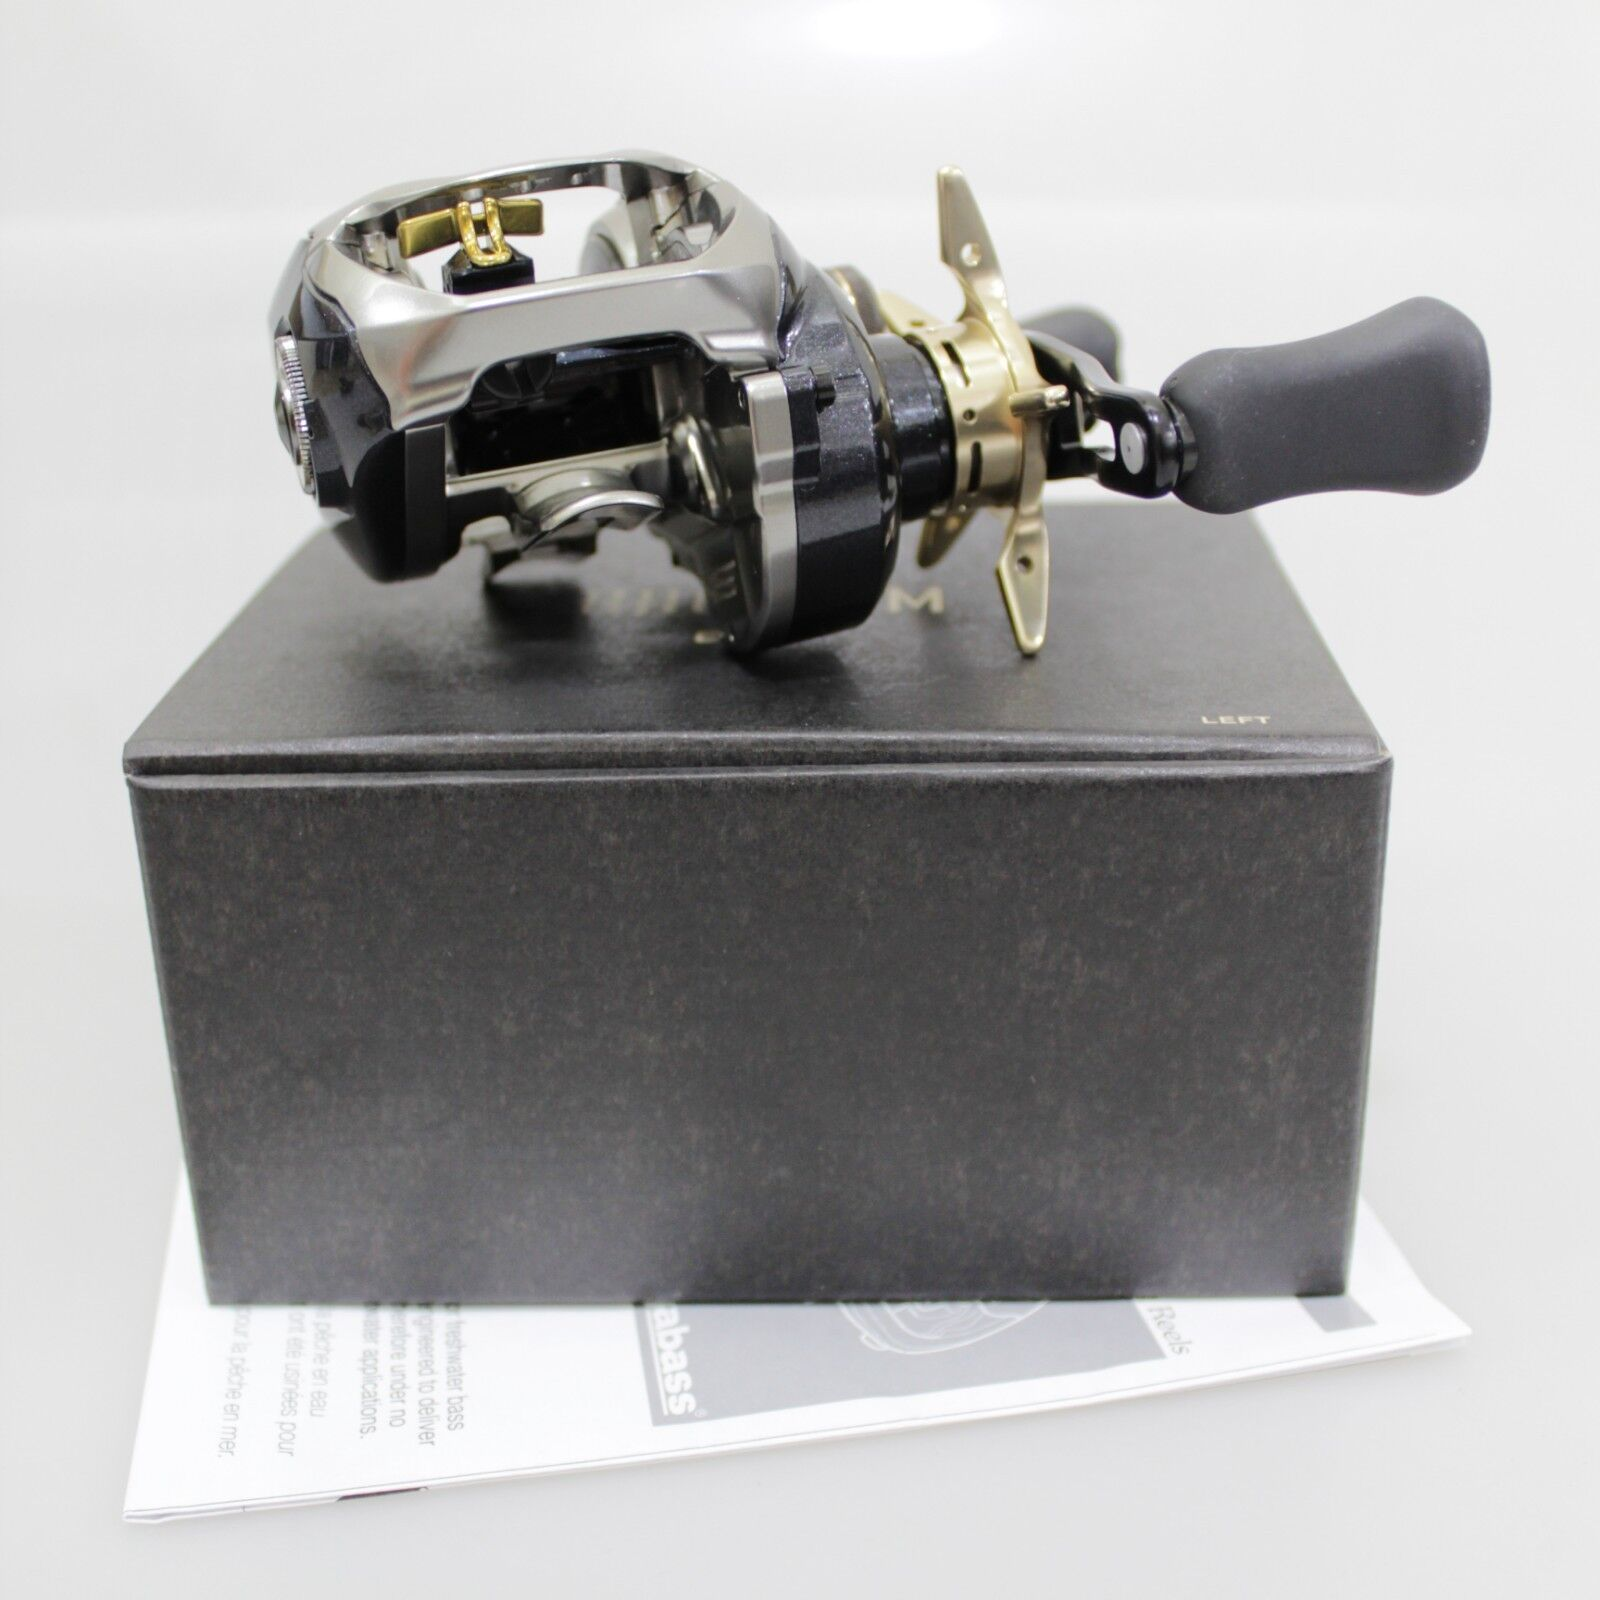 MEGABASS RHODIUM 63 Left Baitcasting Reel Fedex Priority 2days to Usa